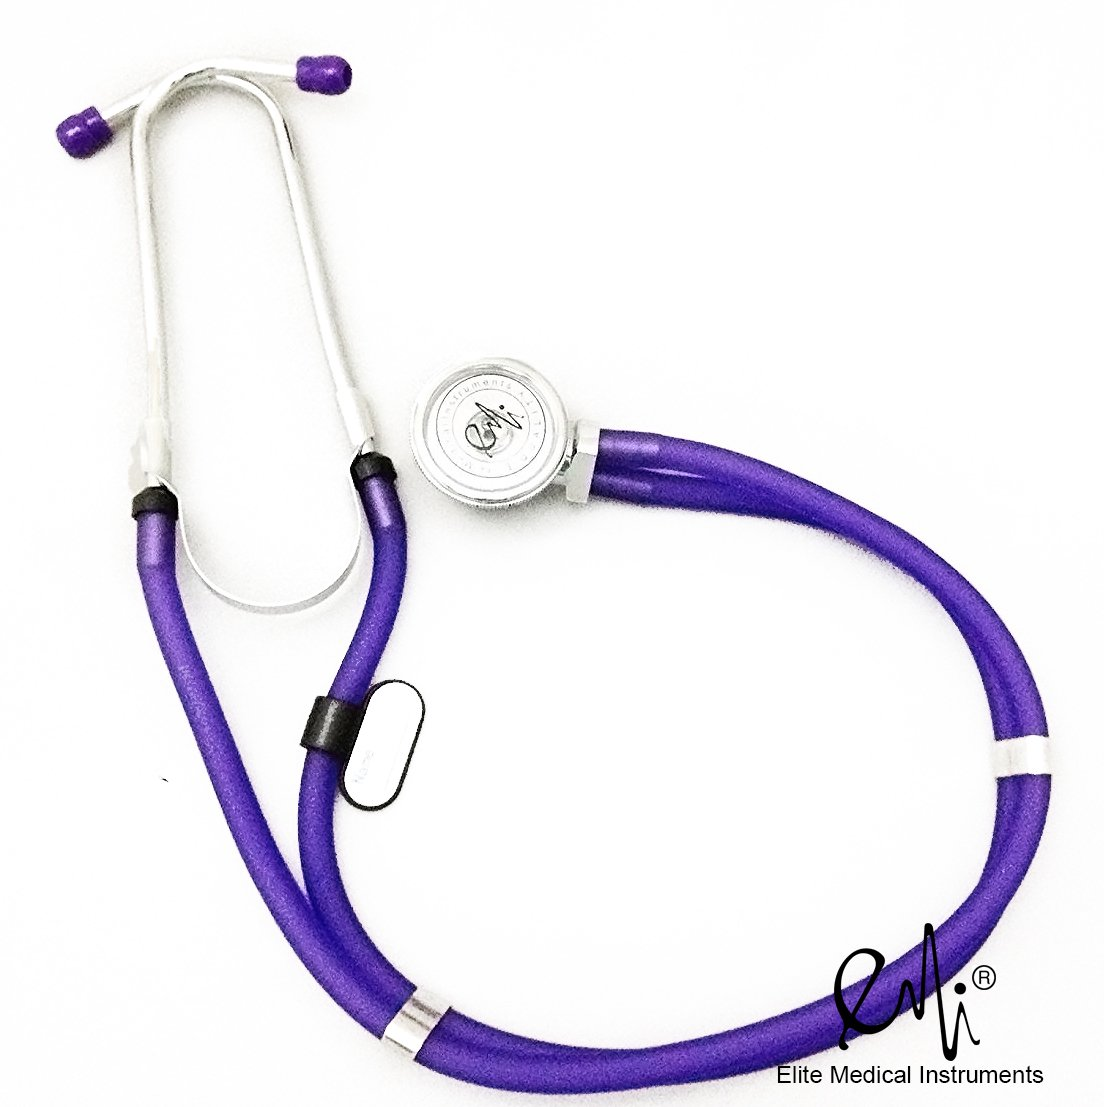 Elite Medical Instruments ESR-112 Sprague Rappaport Stethoscope Frosted, Purple